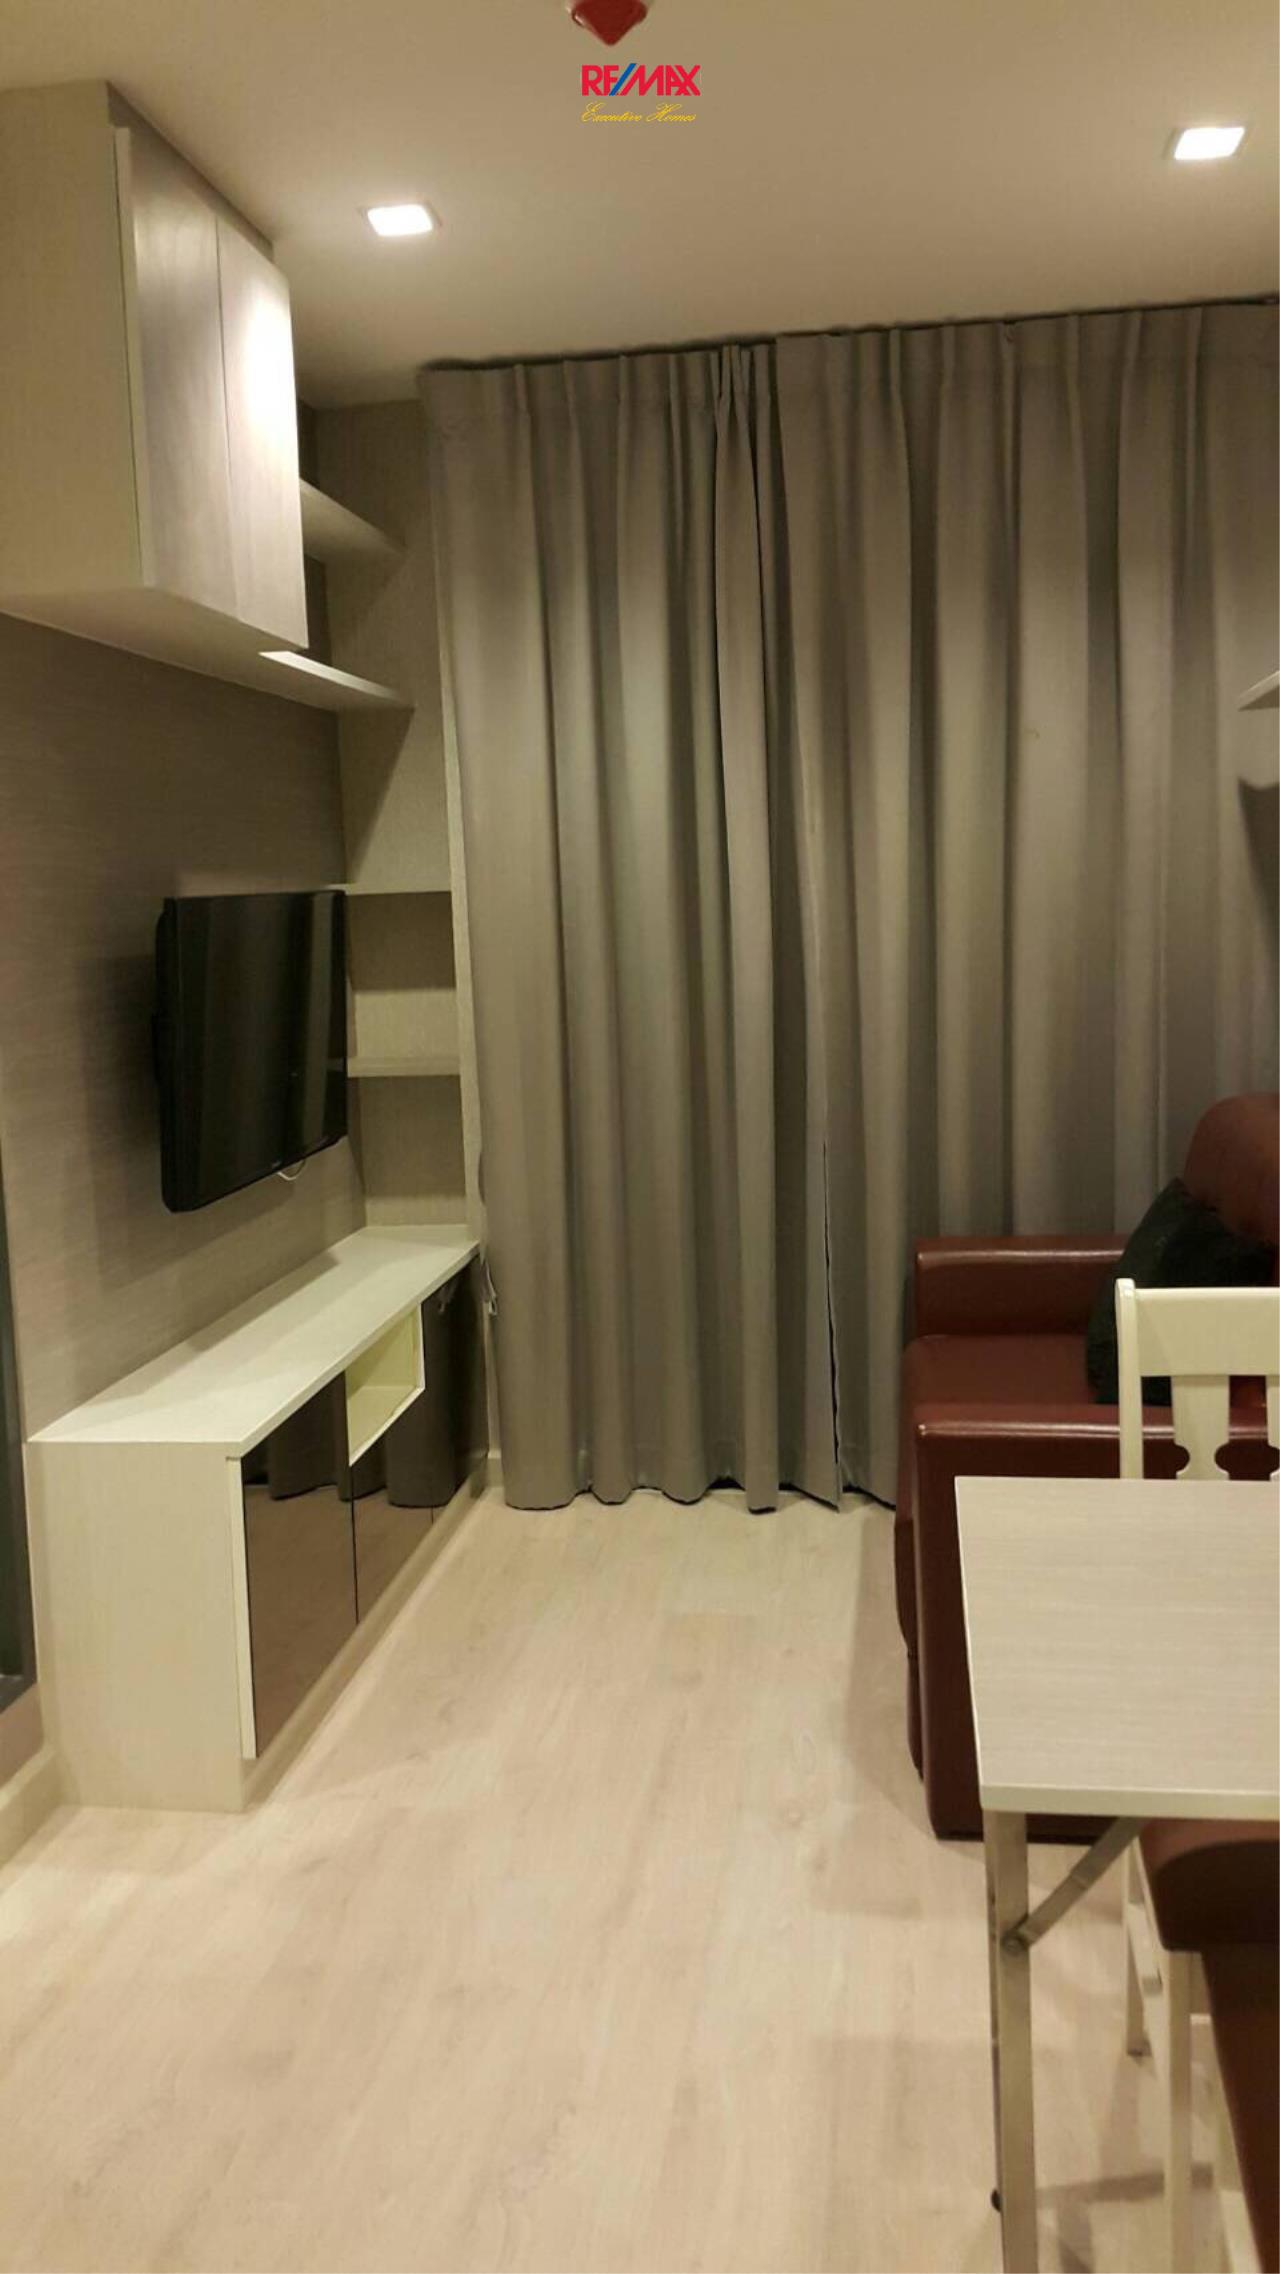 RE/MAX Executive Homes Agency's Nice 1 Bedroom for Rent Ideo Mobi Sathorn 5